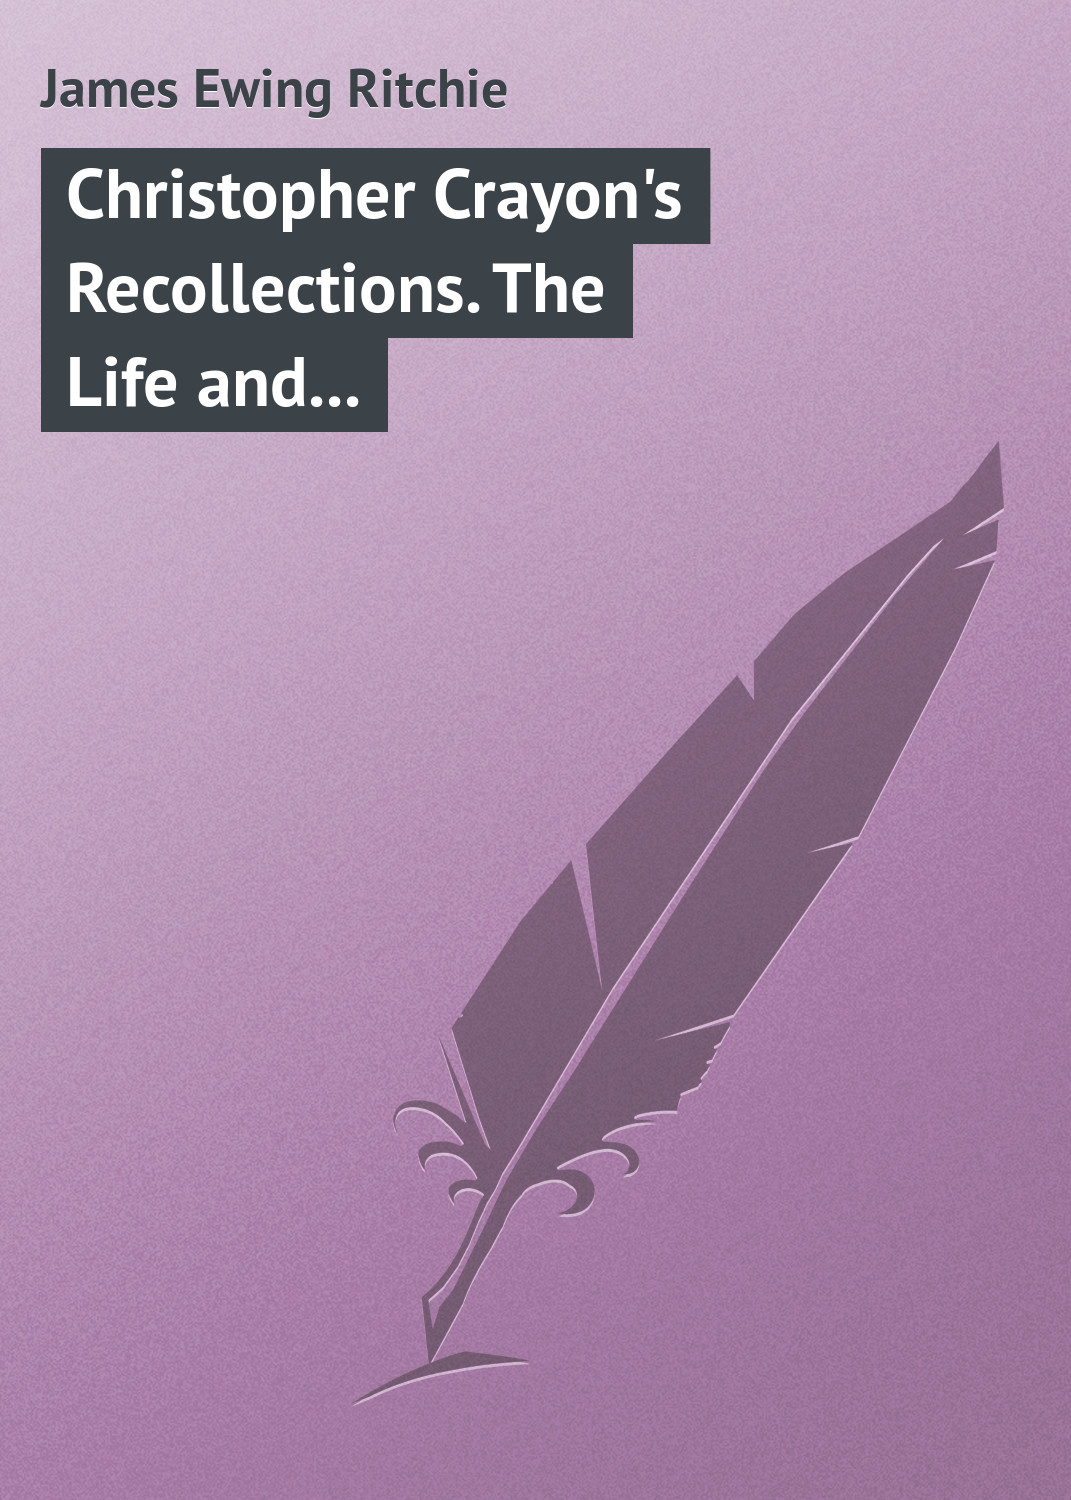 James Ewing Ritchie Christopher Crayon's Recollections. The Life and Times of the late James Ewing Ritchie as told by himself скальп петуха wapsi ewing economy dry fly cape